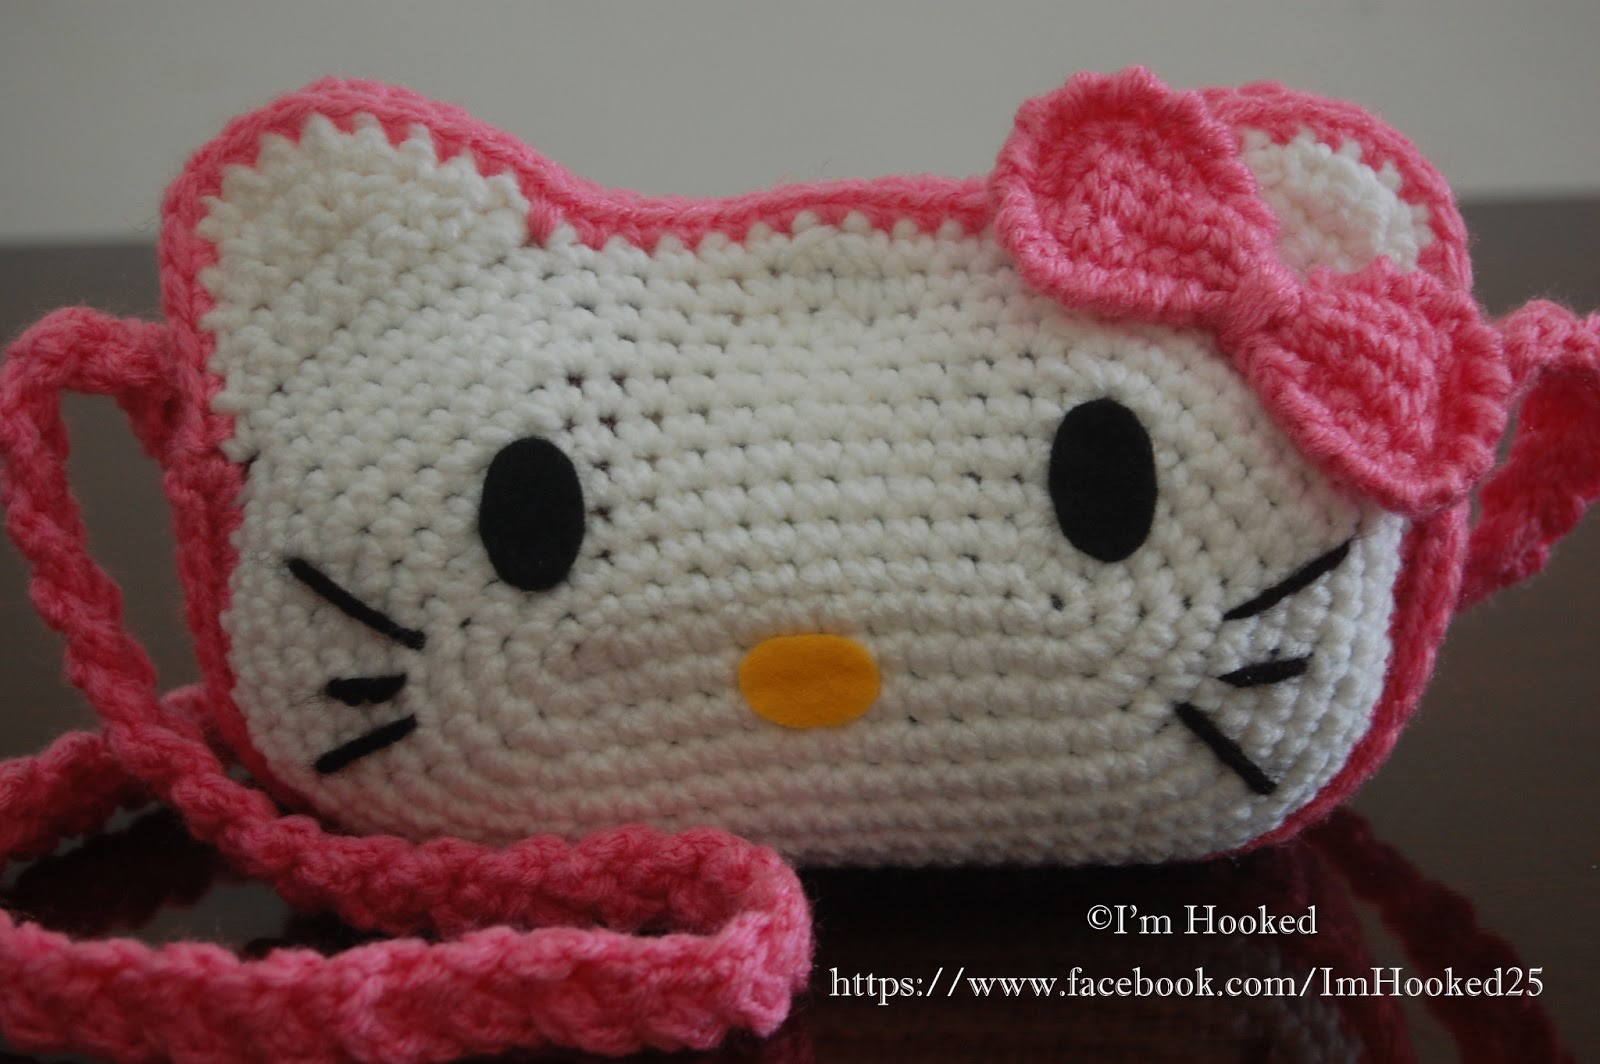 How To Crochet Hello Kitty Bag By Marifu6a Free Pattern Tutorial : Patrones de Hello Kitty para trapillo y lana El blog de ...